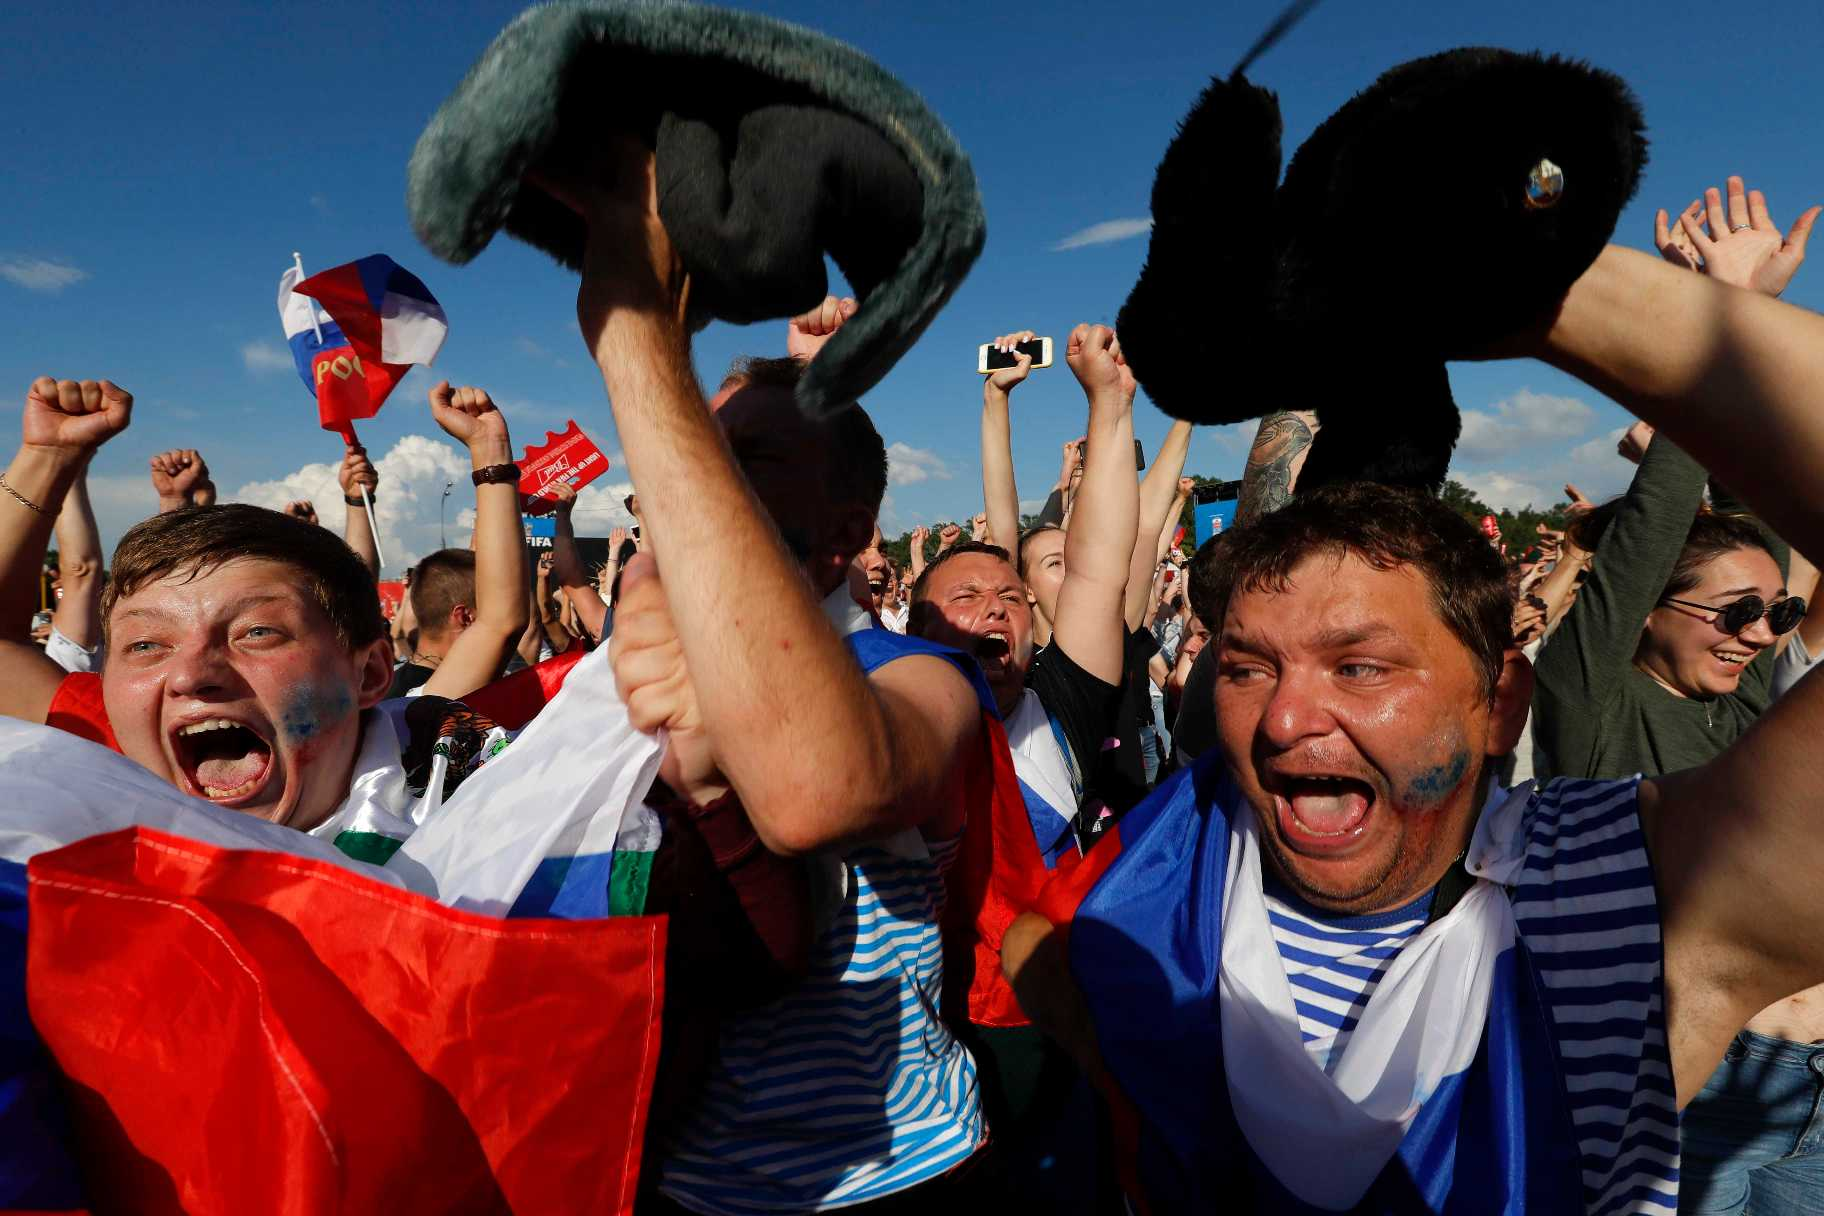 2018-07-01T163628Z_2139374975_UP1EE711A4R2U_RTRMADP_3_SOCCER-WORLDCUP-ESP-RUS-FANS-REACTIONS